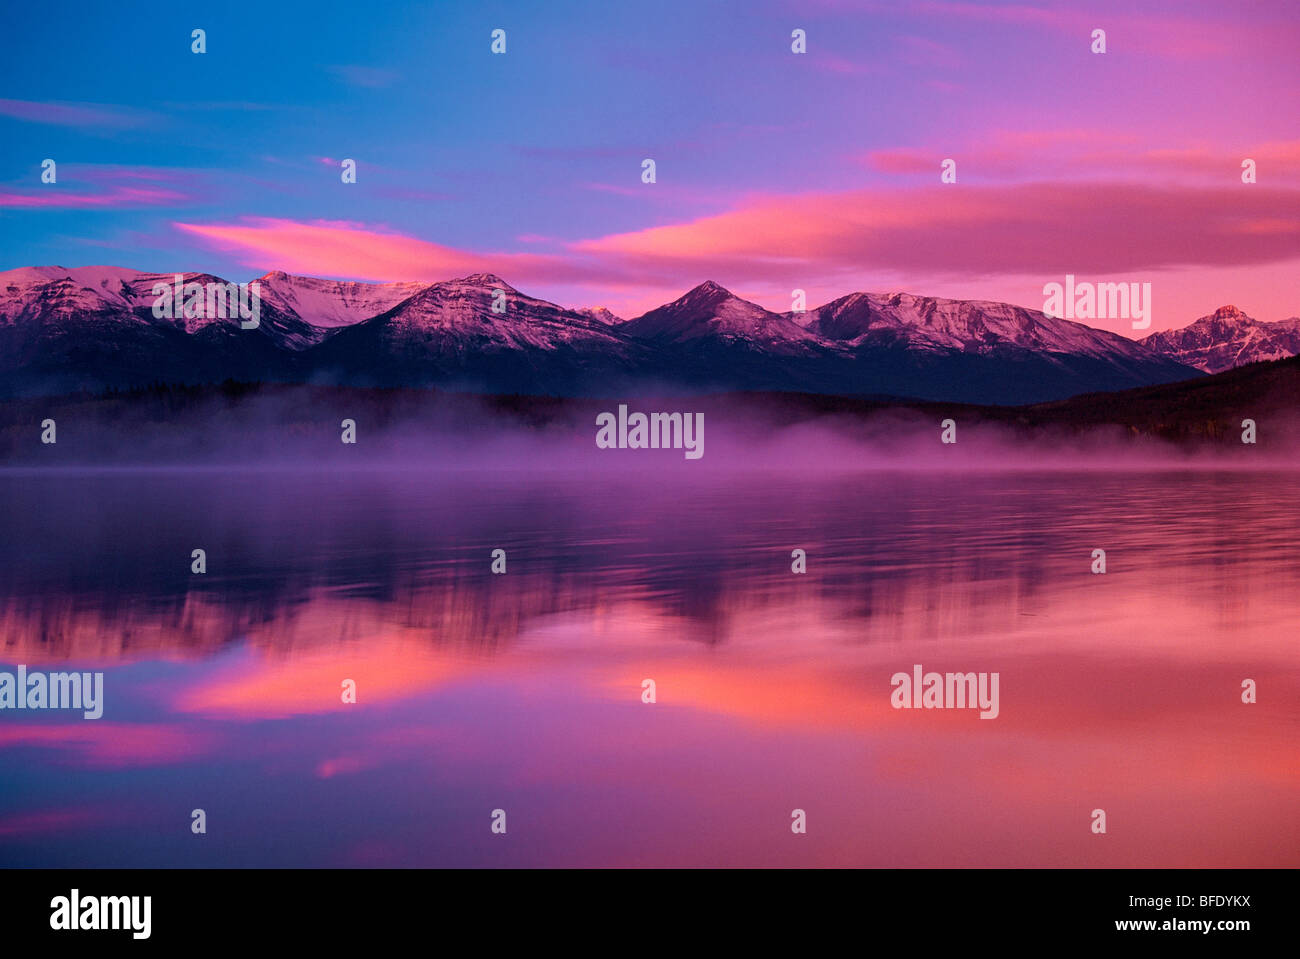 Mountains southwest of Jasper reflected in Pyramid Lake at sunrise, Jasper National Park, Alberta, Canada - Stock Image